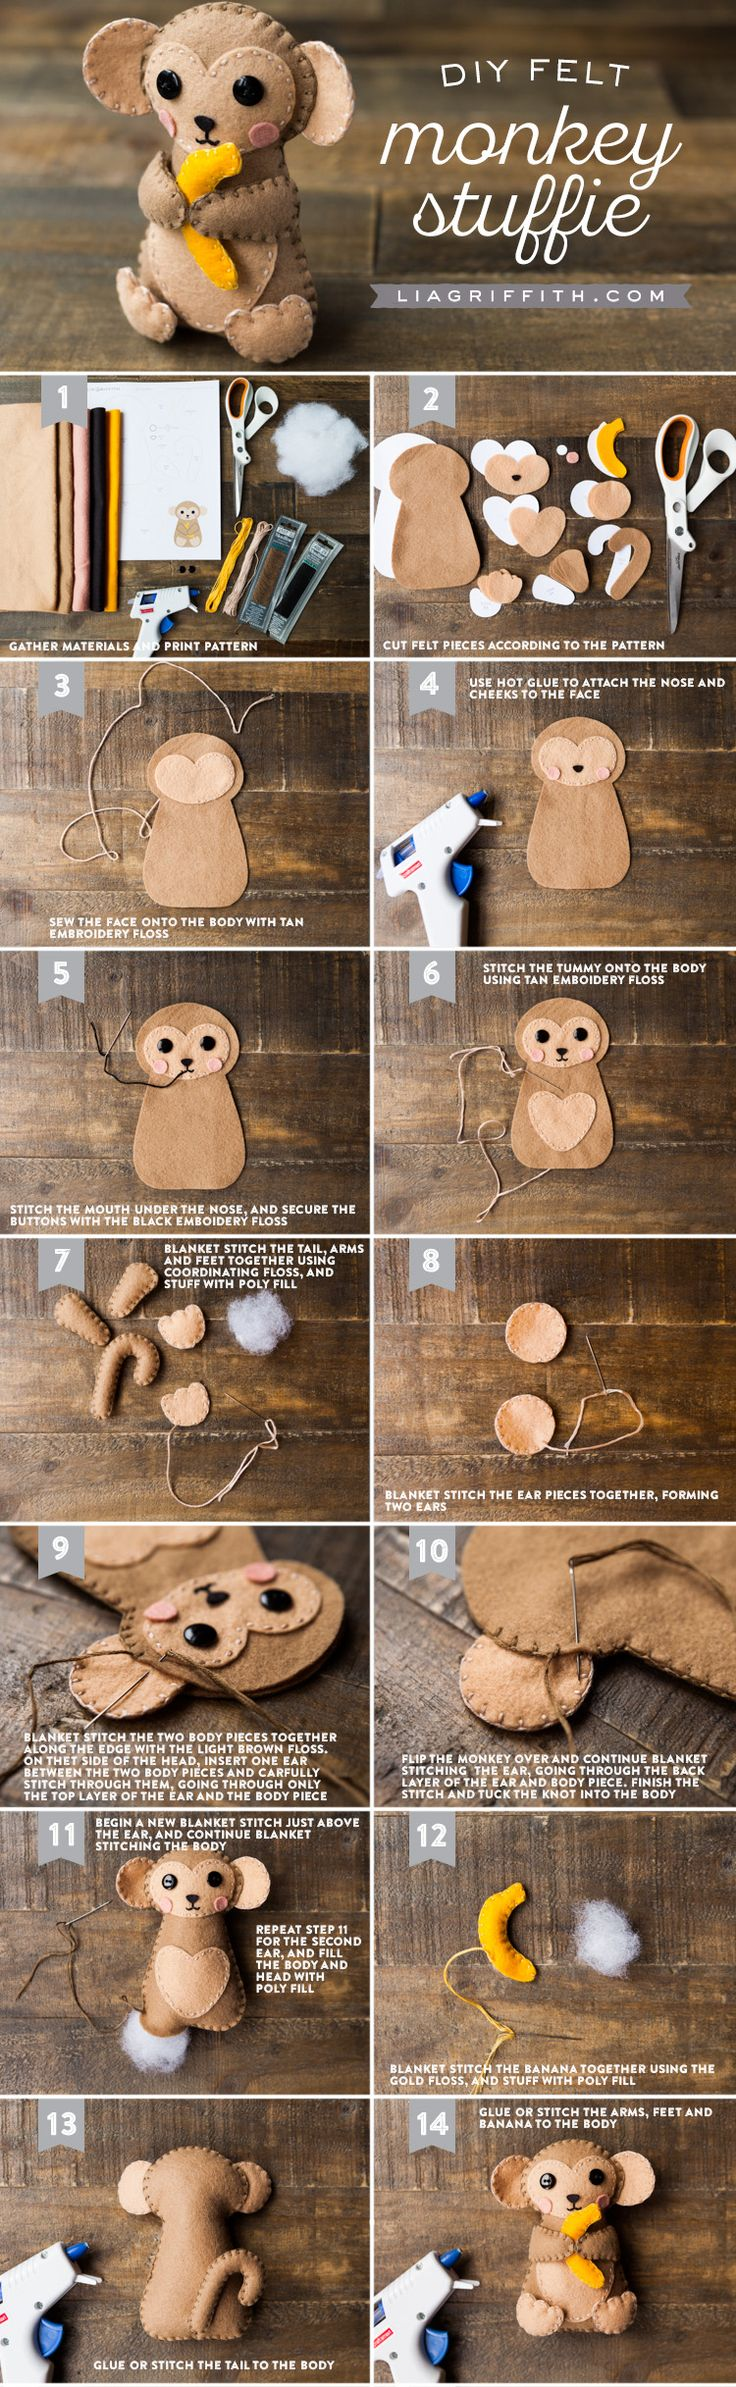 best 25 monkey crafts ideas on pinterest jungle crafts kid